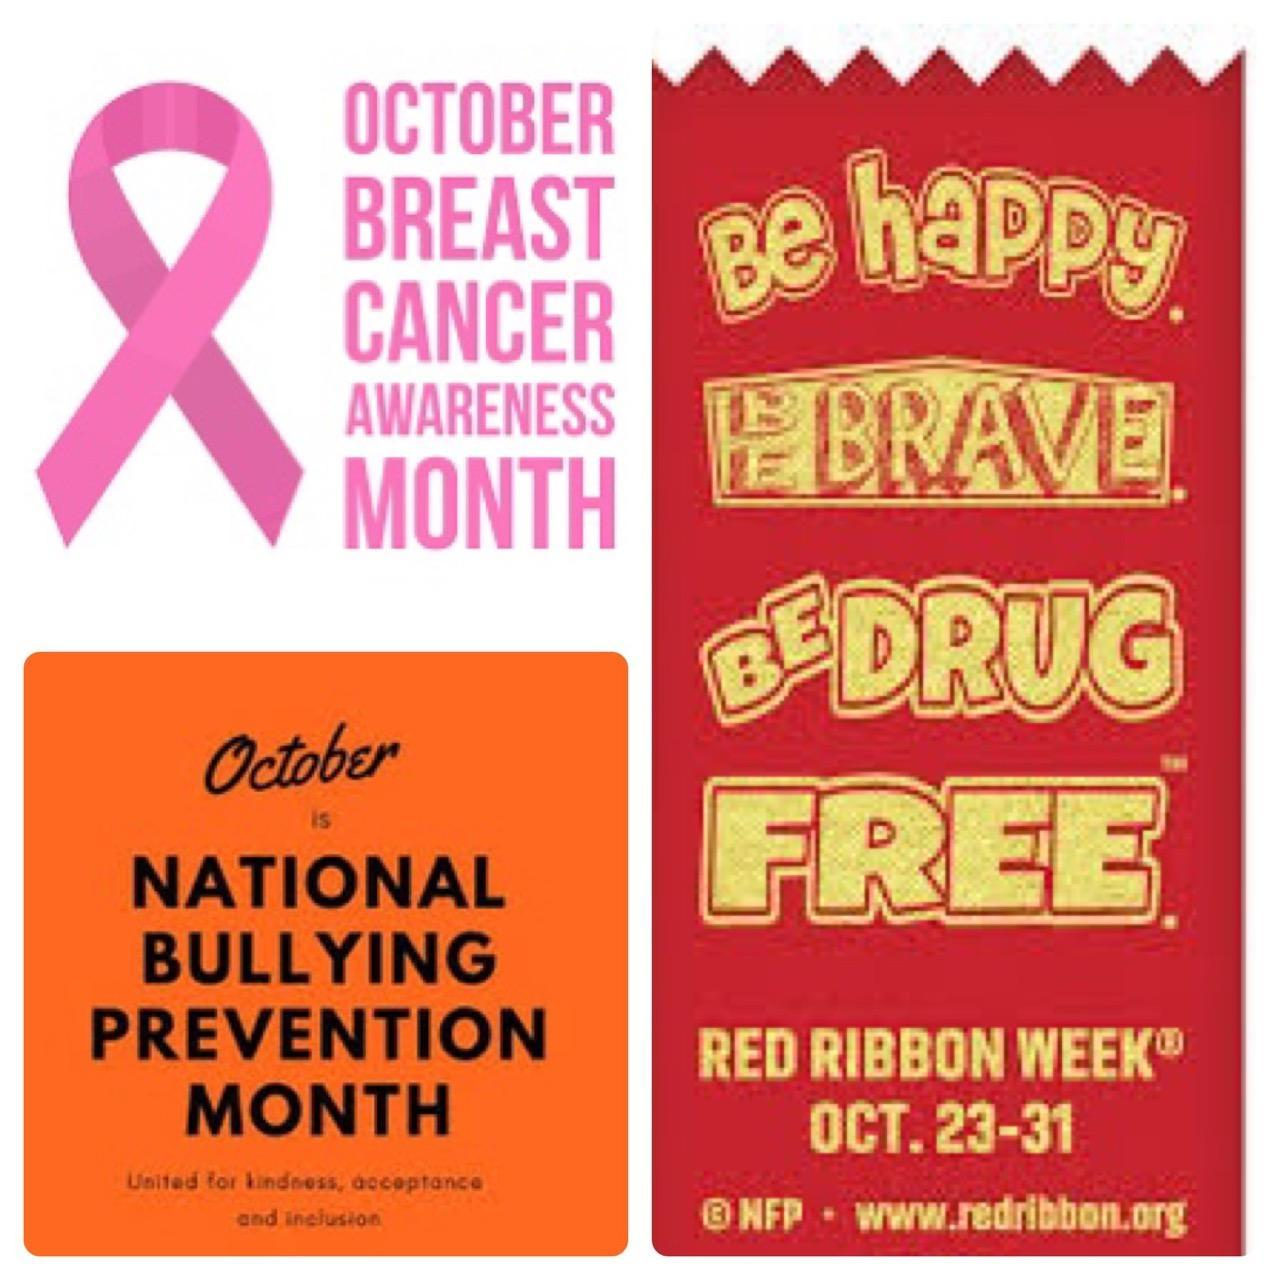 pic collage of October month awareness of breast cancer, bullying prevention, and red ribbon week